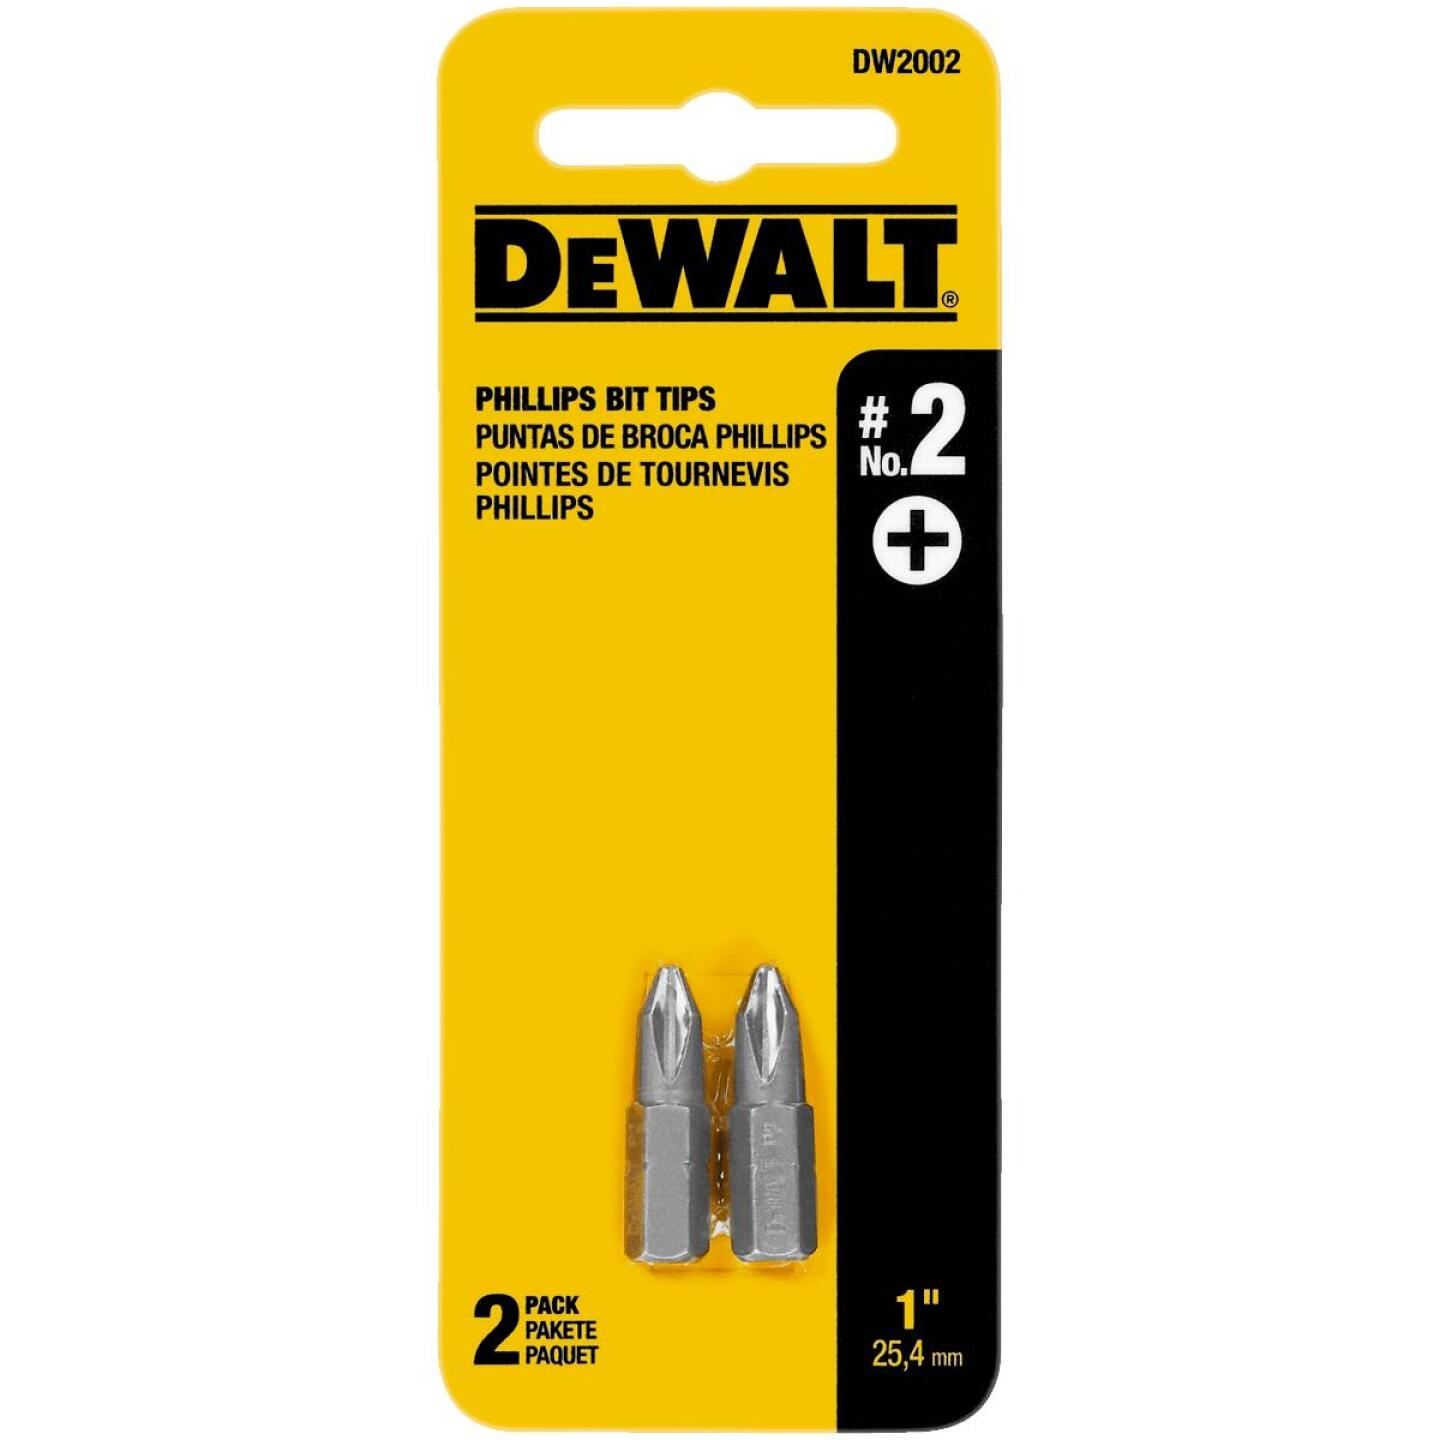 DeWalt Phillips #2 1 In. Insert Screwdriver Bit Image 1